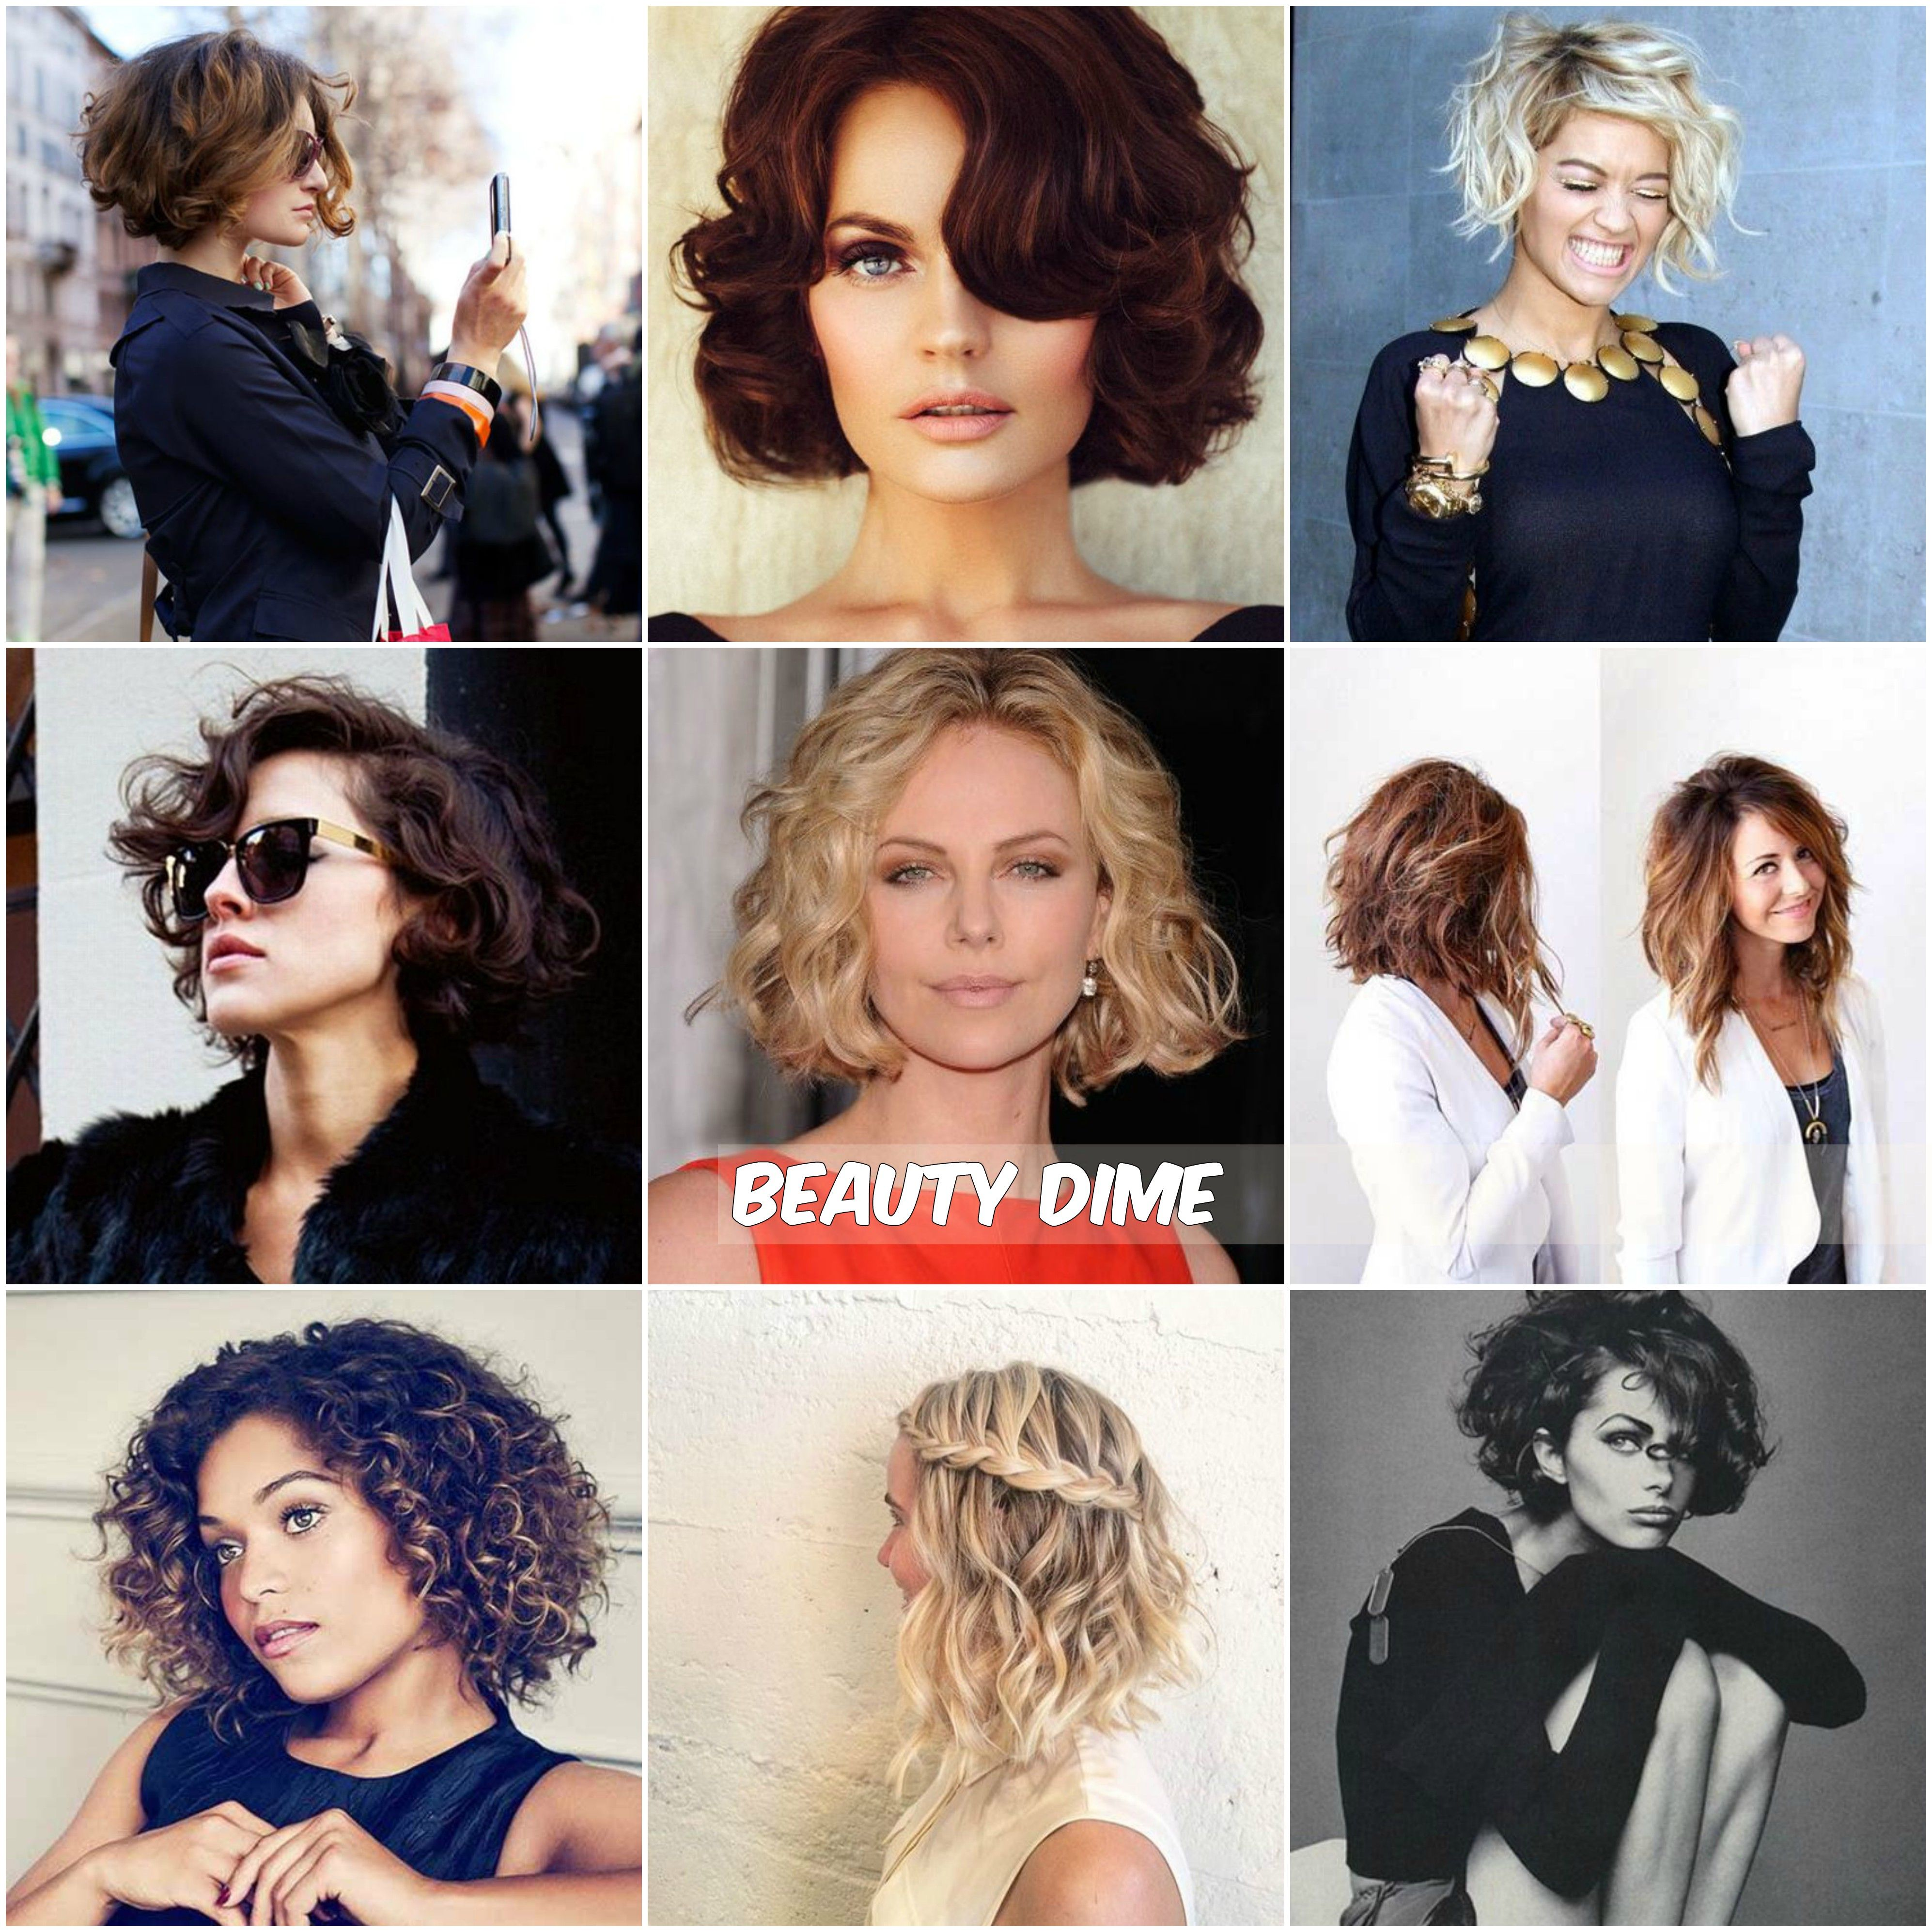 Time to curl up! Use these hair curling hacks and flaunt off in style!